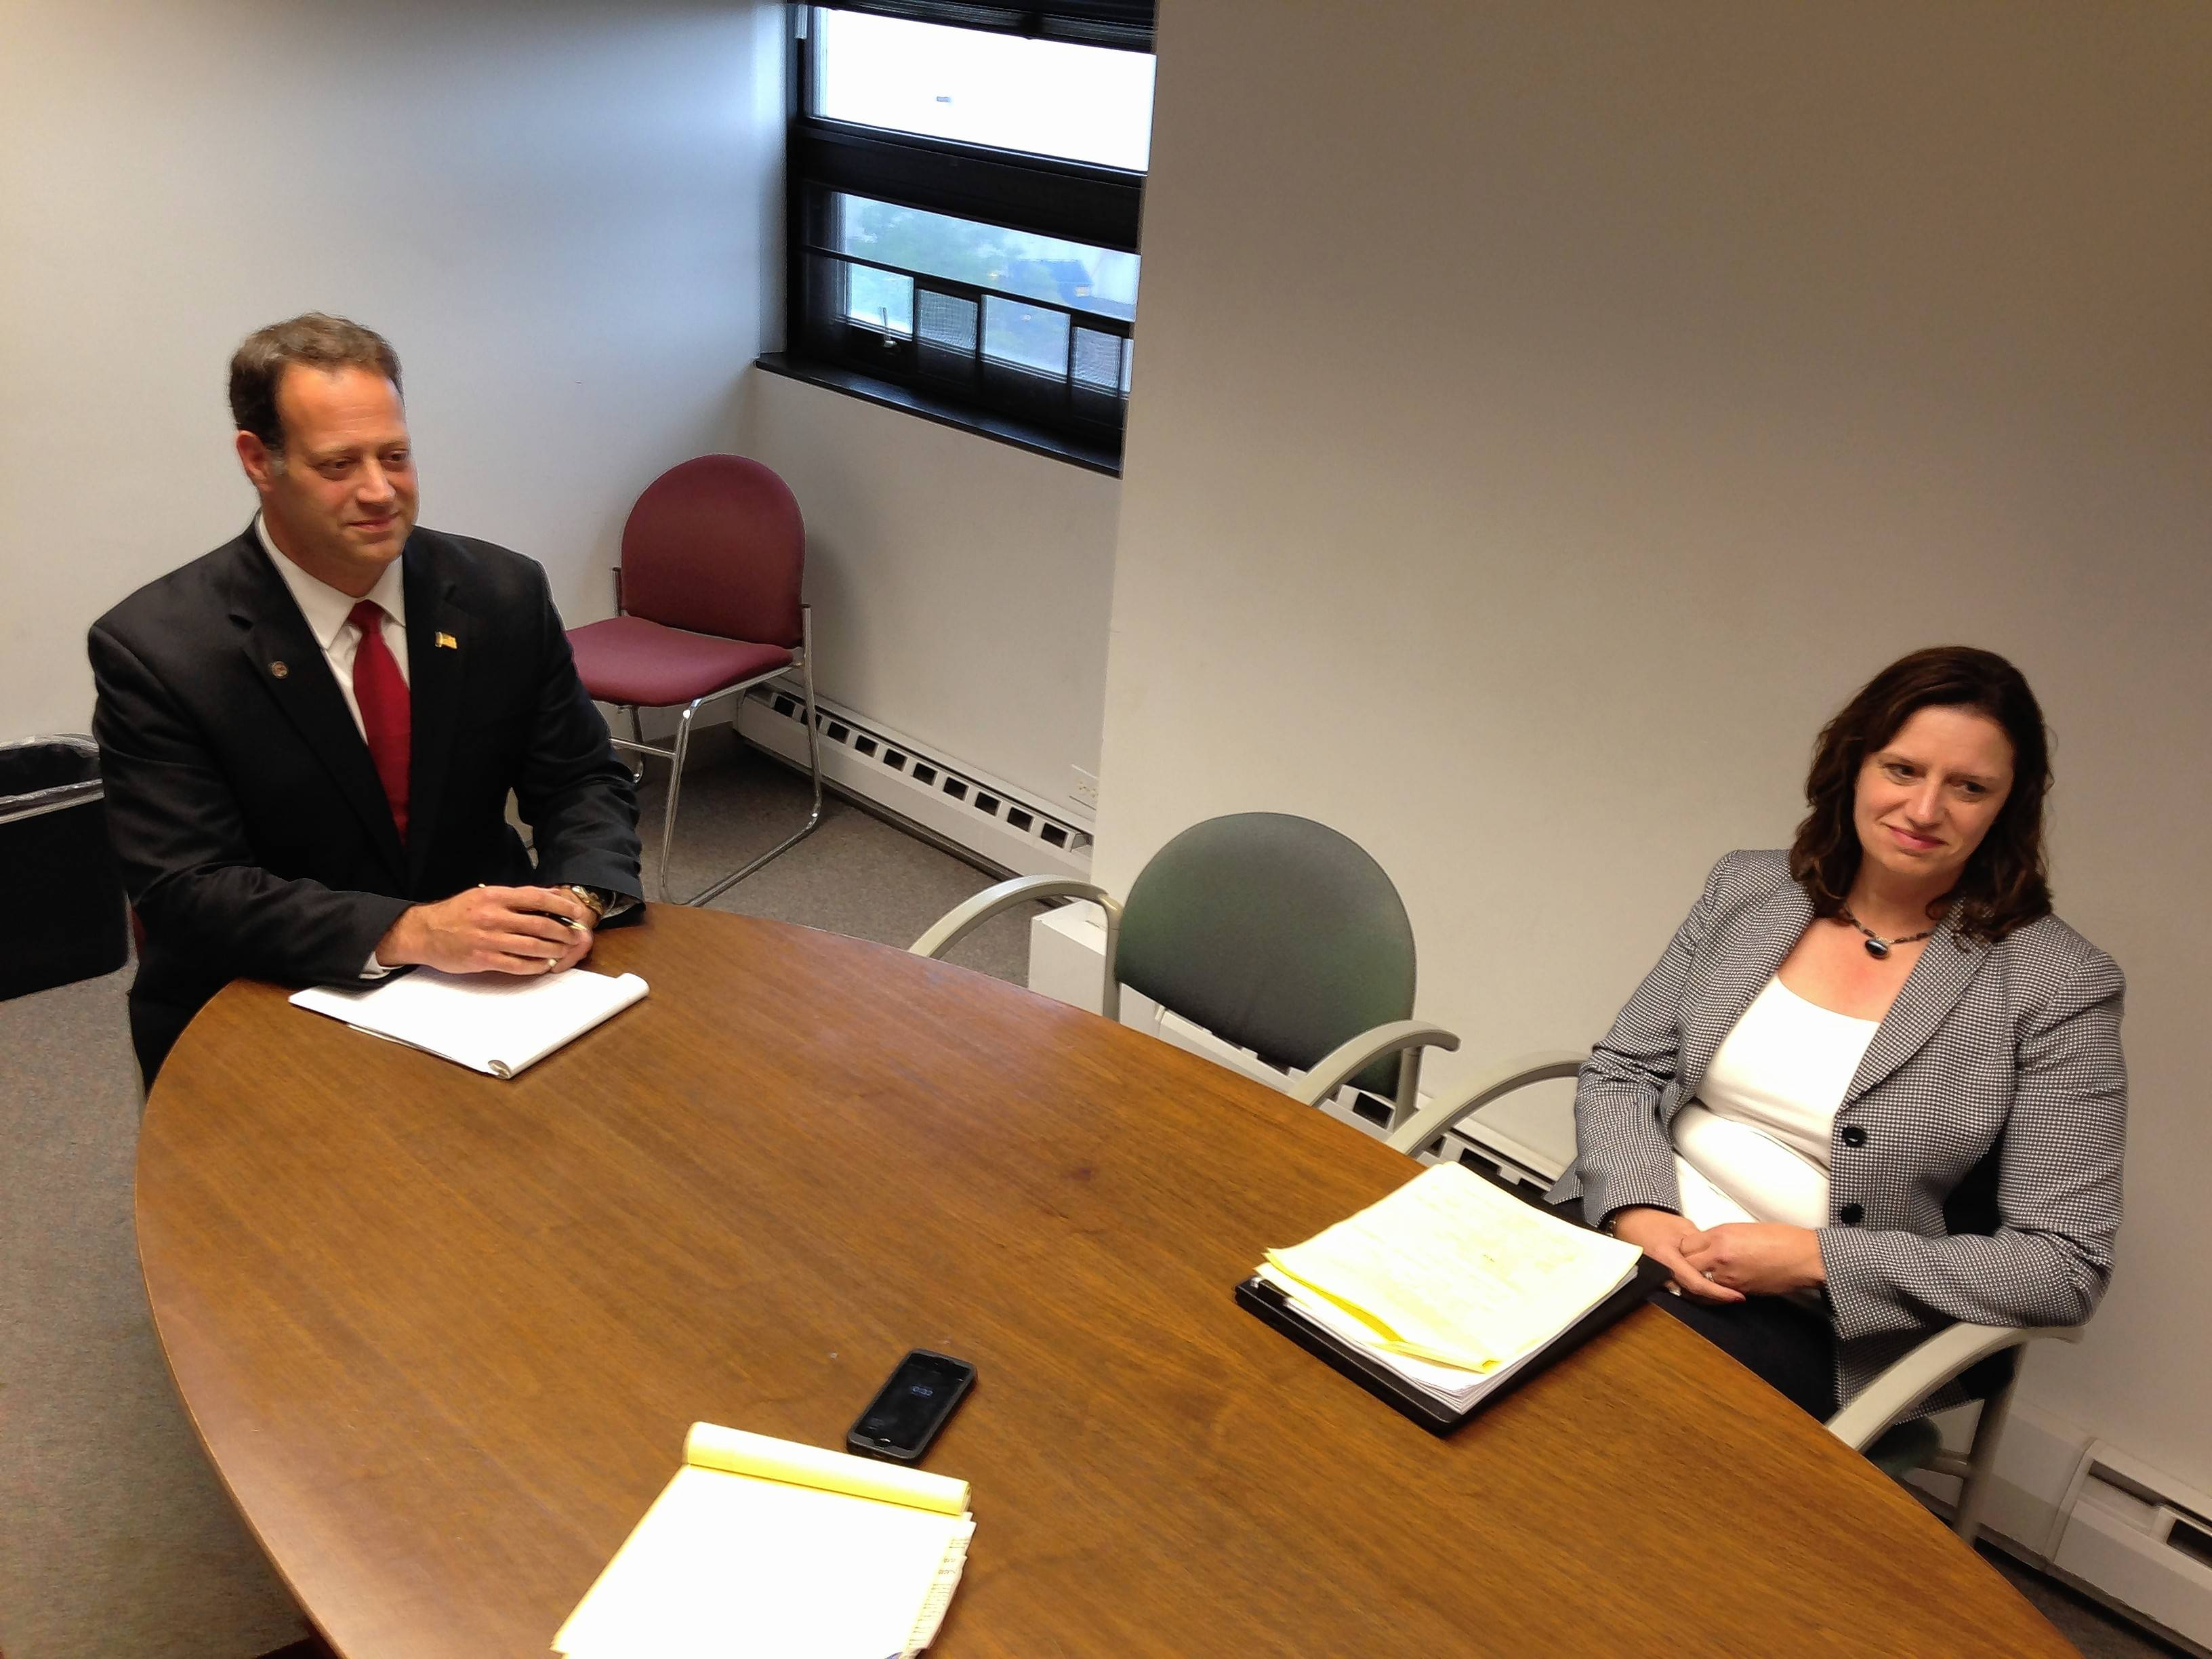 Incumbent Republican Keith Brin, left, and Democrat Erin Cartwright Weinstein are candidates for Lake County circuit court clerk. They discussed issues at a Daily Herald editorial board joint interview this week.